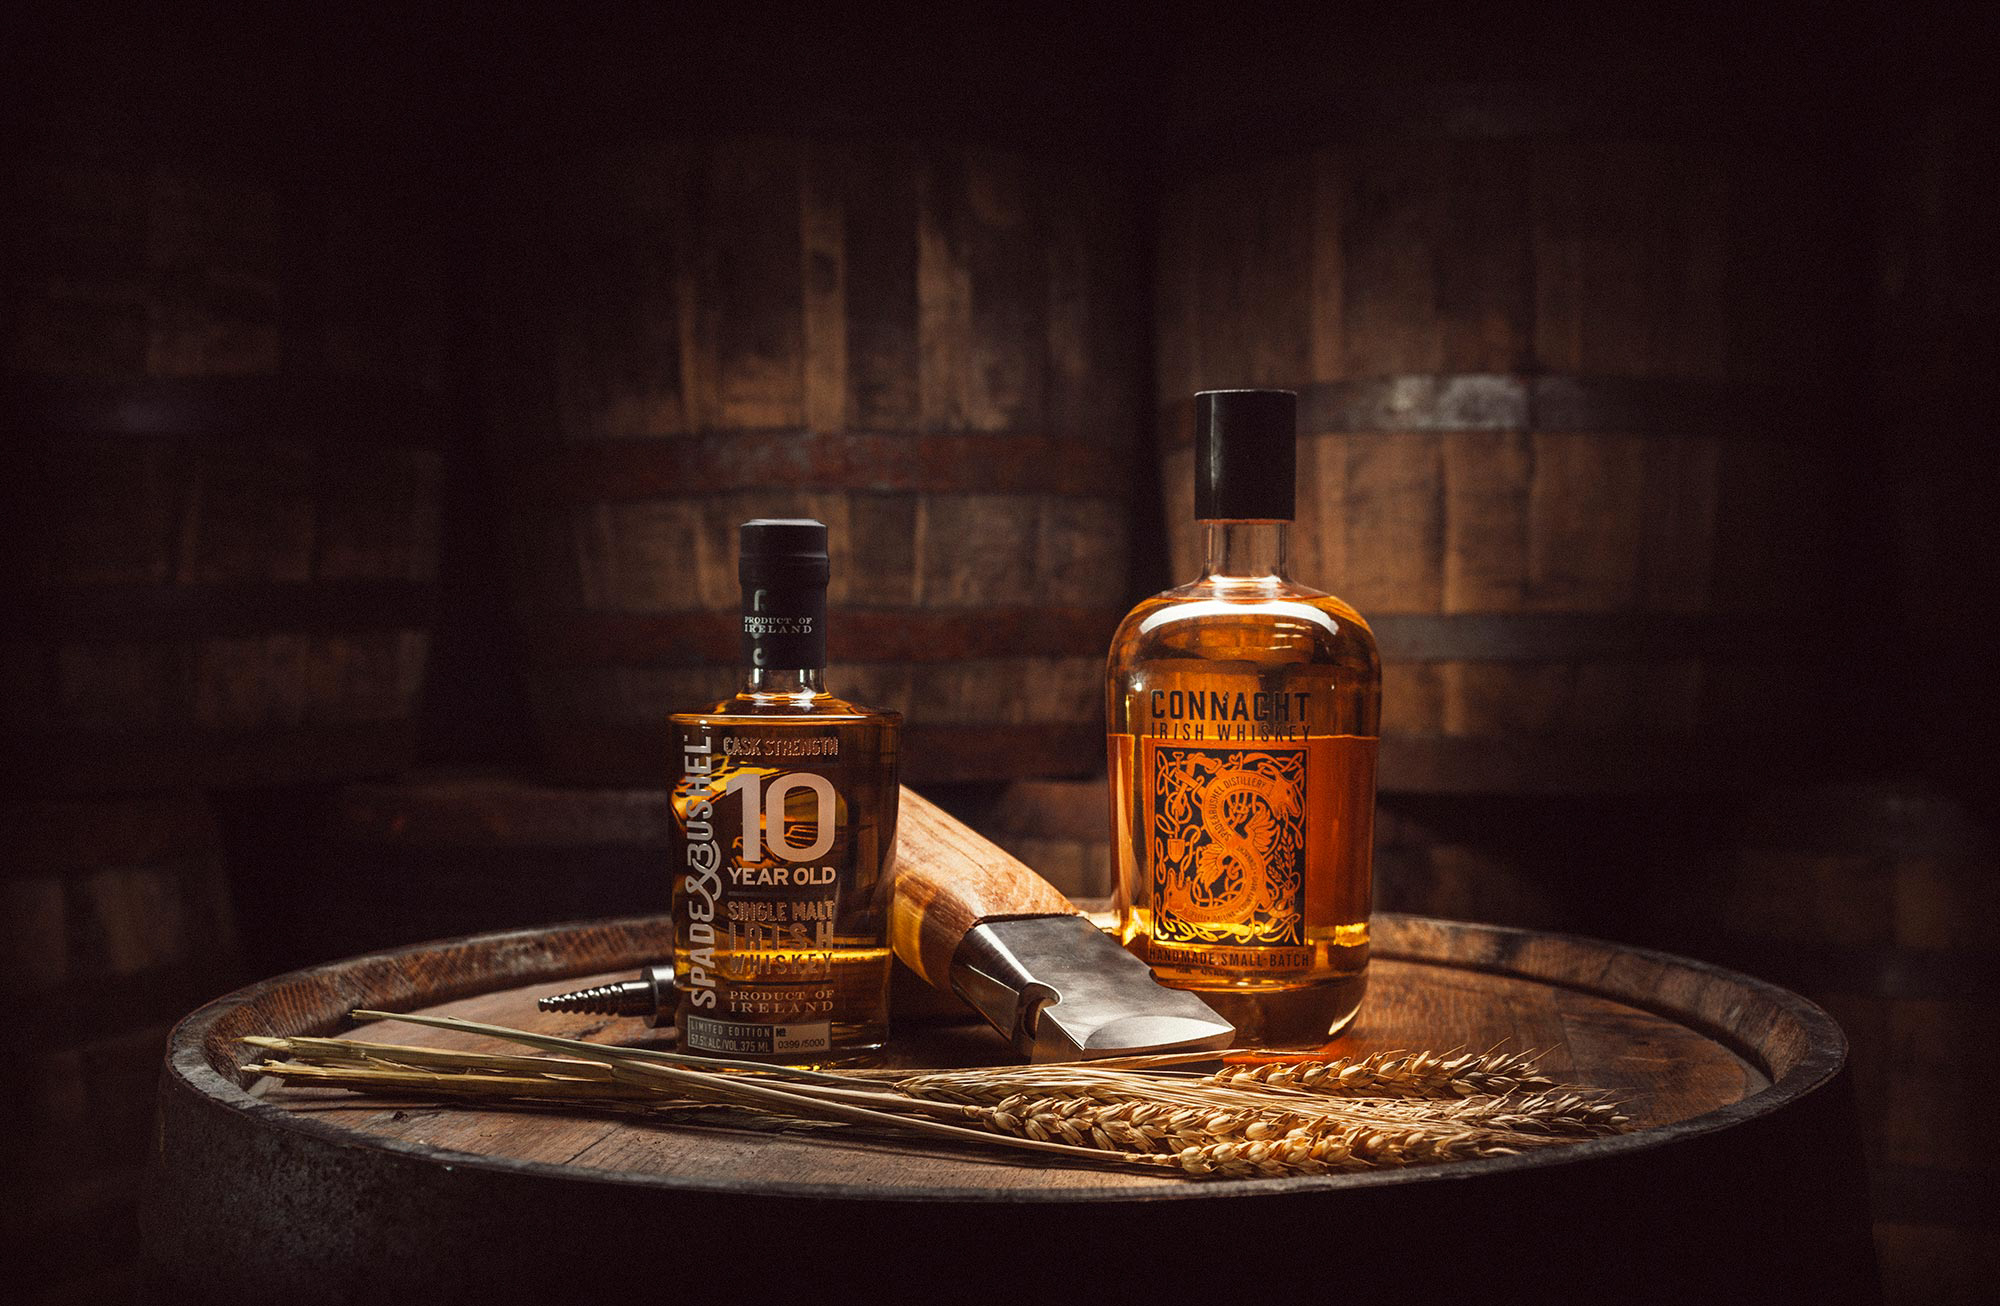 The Connacht Whiskey Company